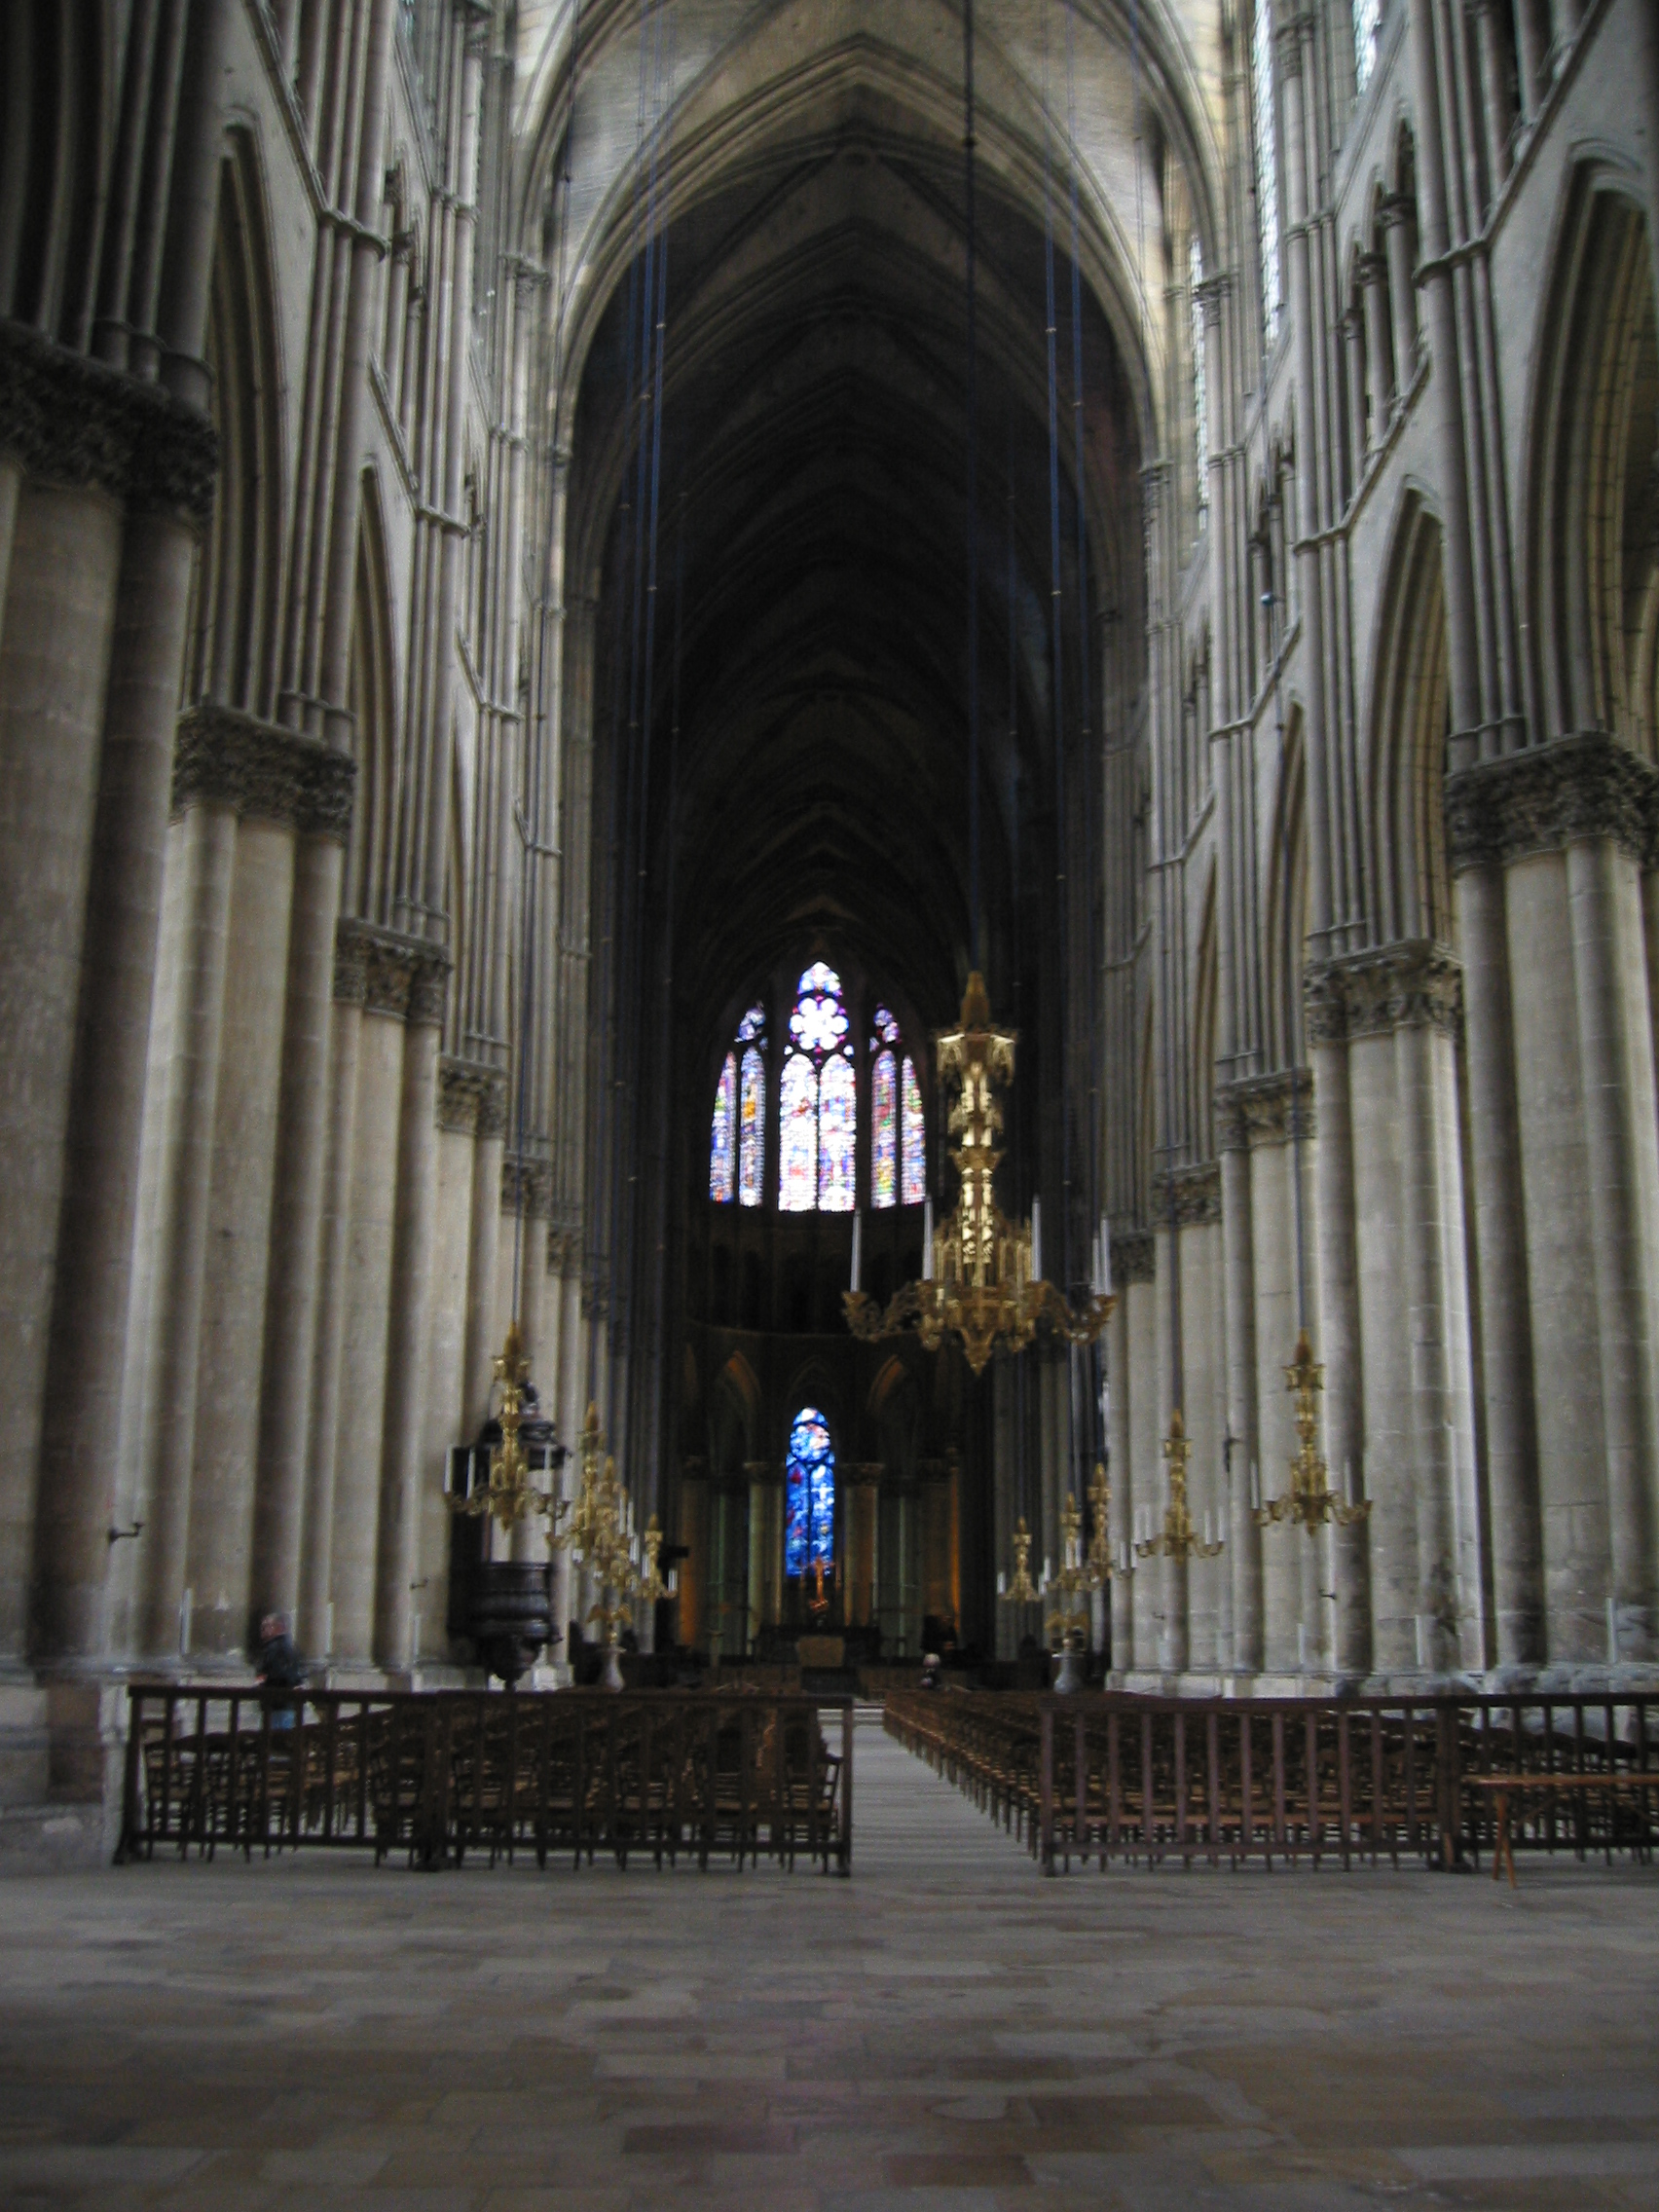 File:Reims Cathedral, interior (1).jpg - Wikimedia Commons